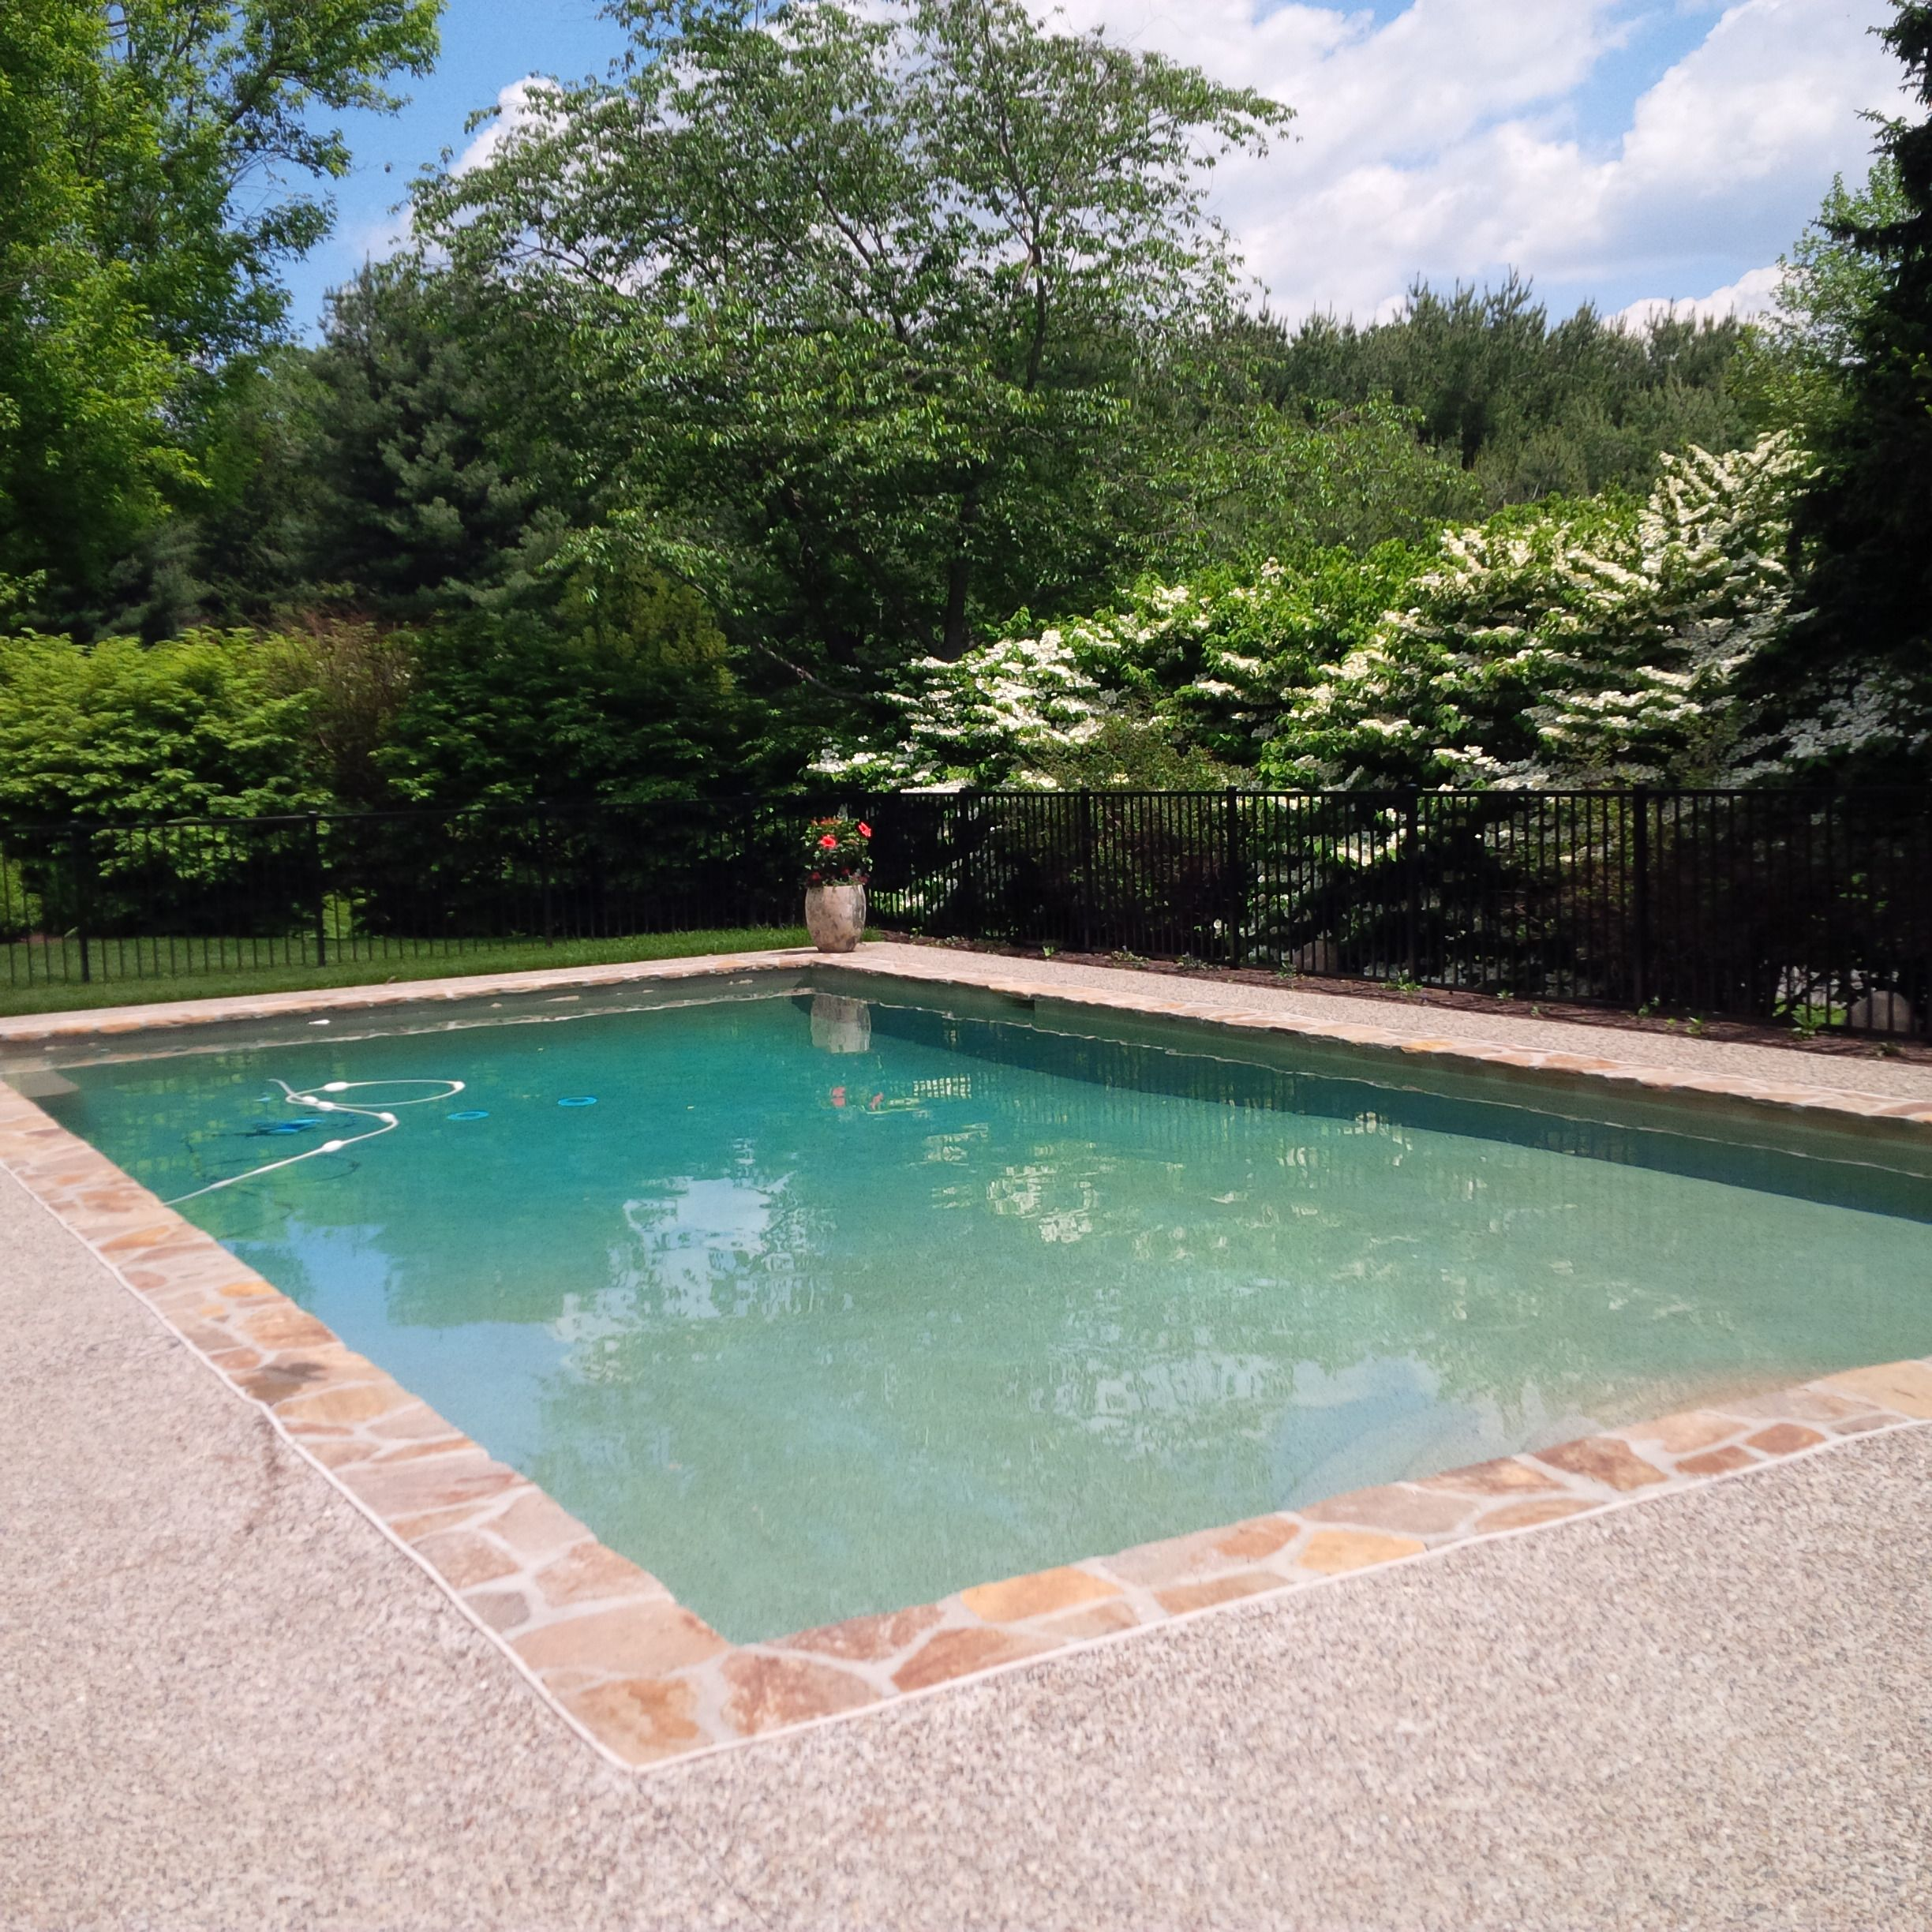 Sealing exposed aggregate pool deck - Chadds Ford Renovated Pool Featuring Stone Coping With Exposed Aggregate Concrete Deck